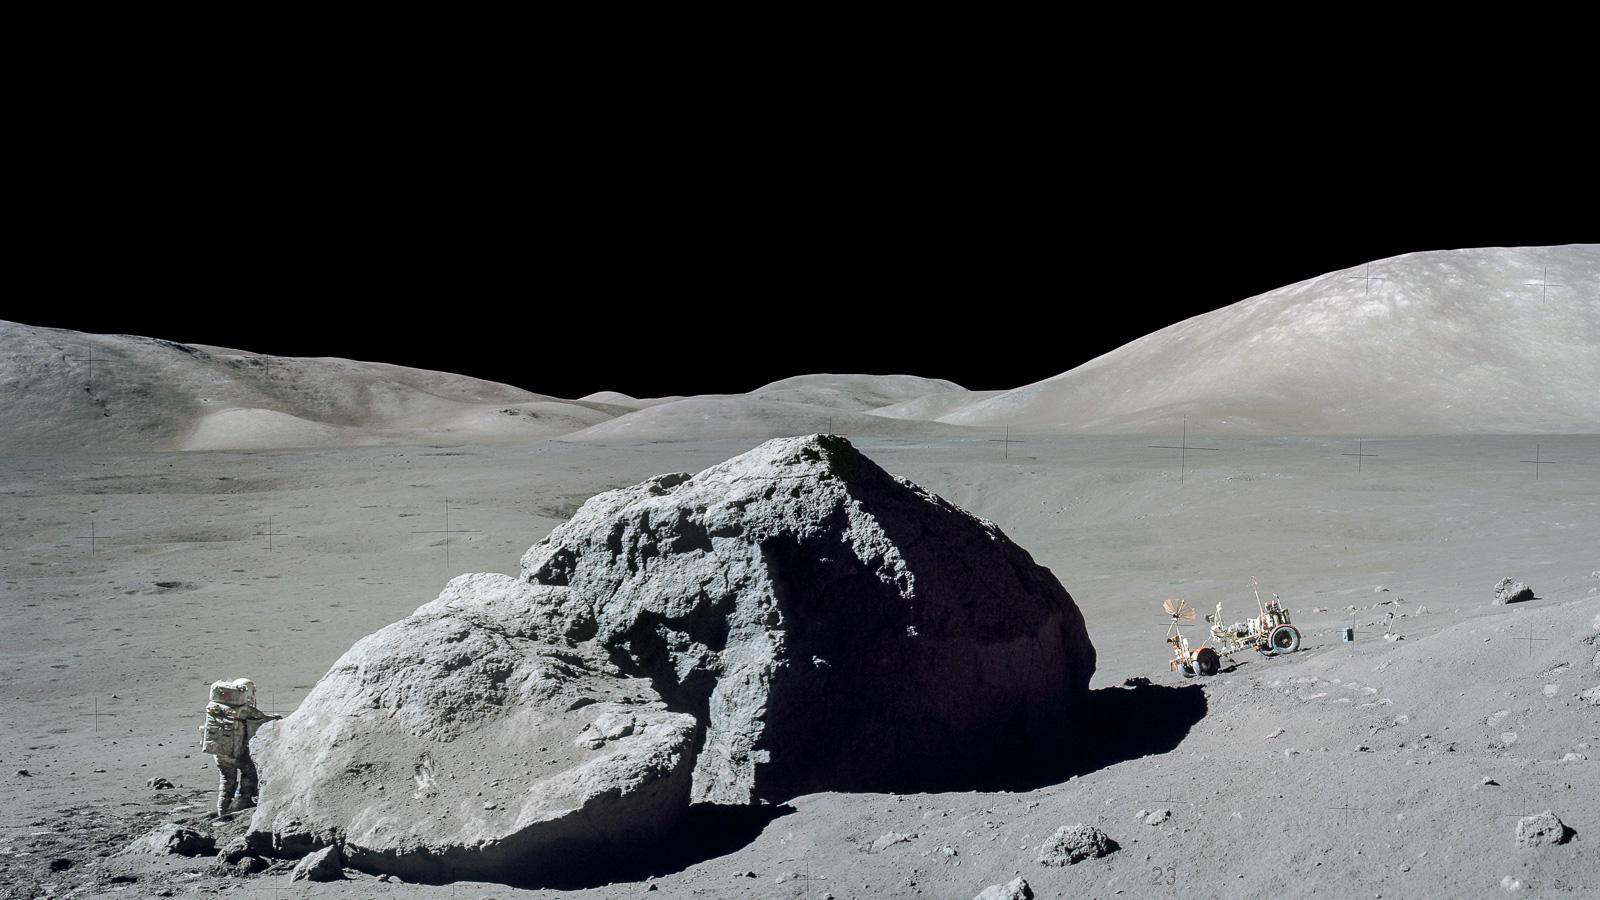 The Last Man on the Moon, or What It Means to Share